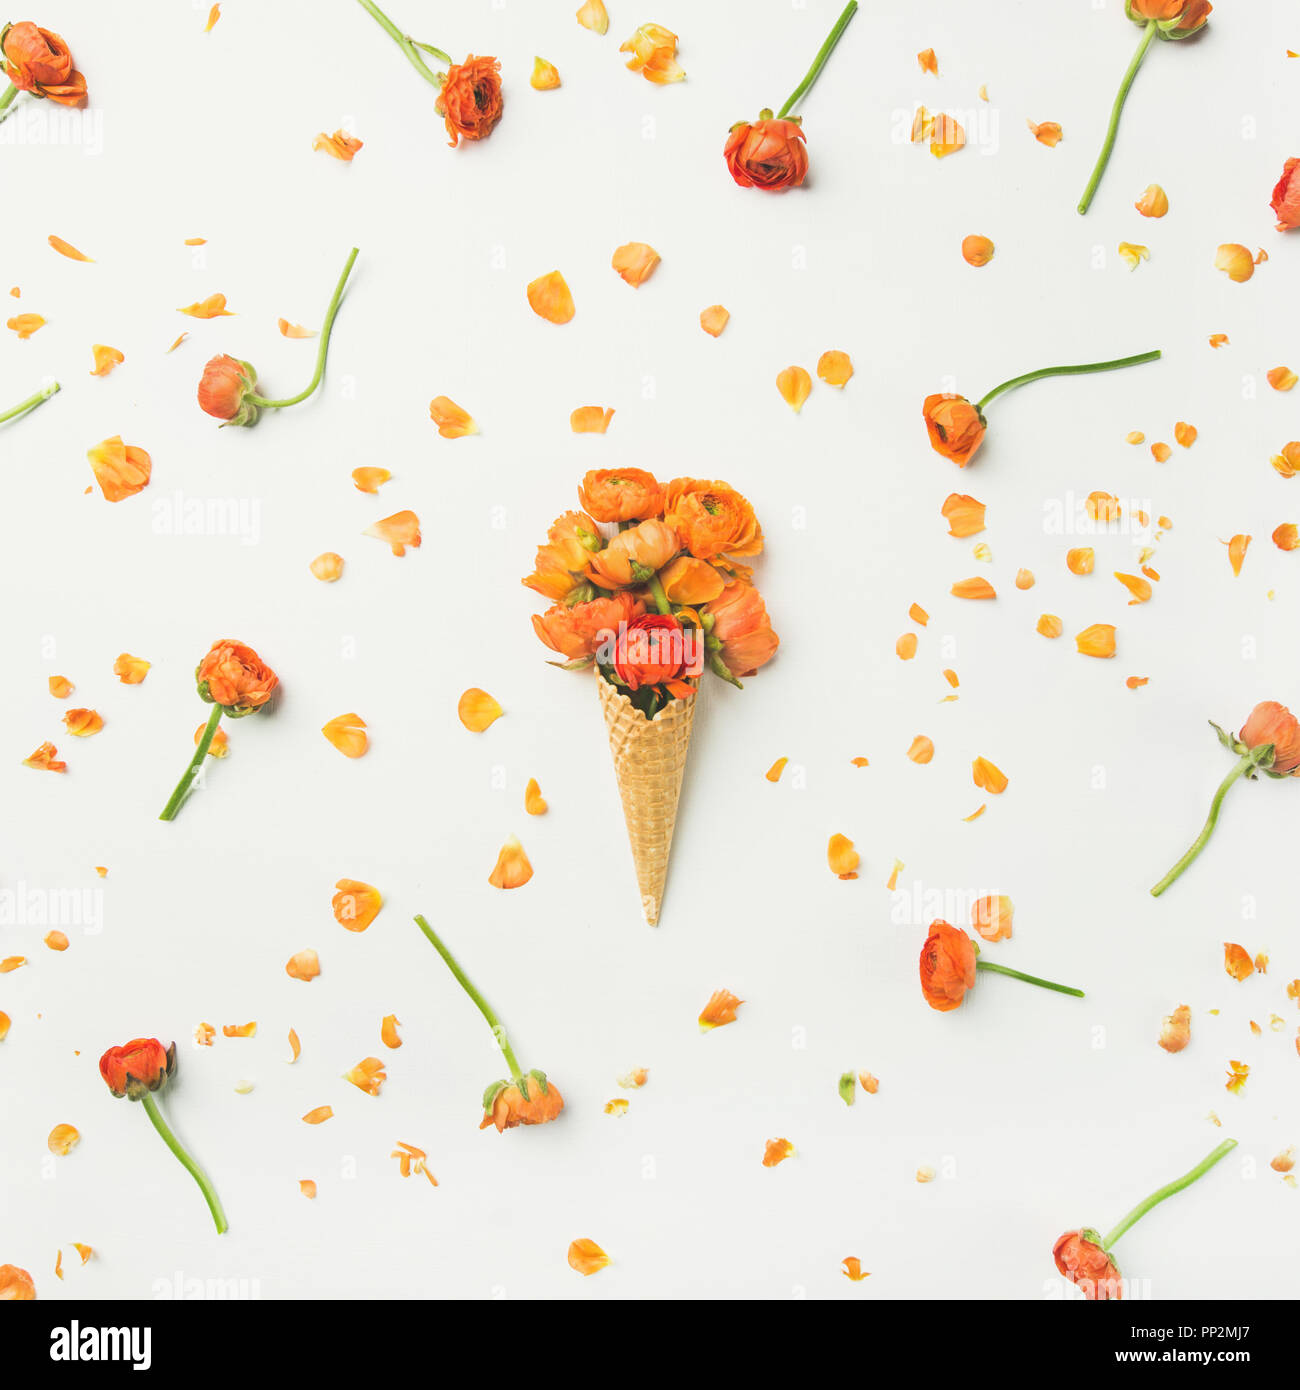 Waffle cone with orange buttercup flowers. Spring or summer mood concept - Stock Image